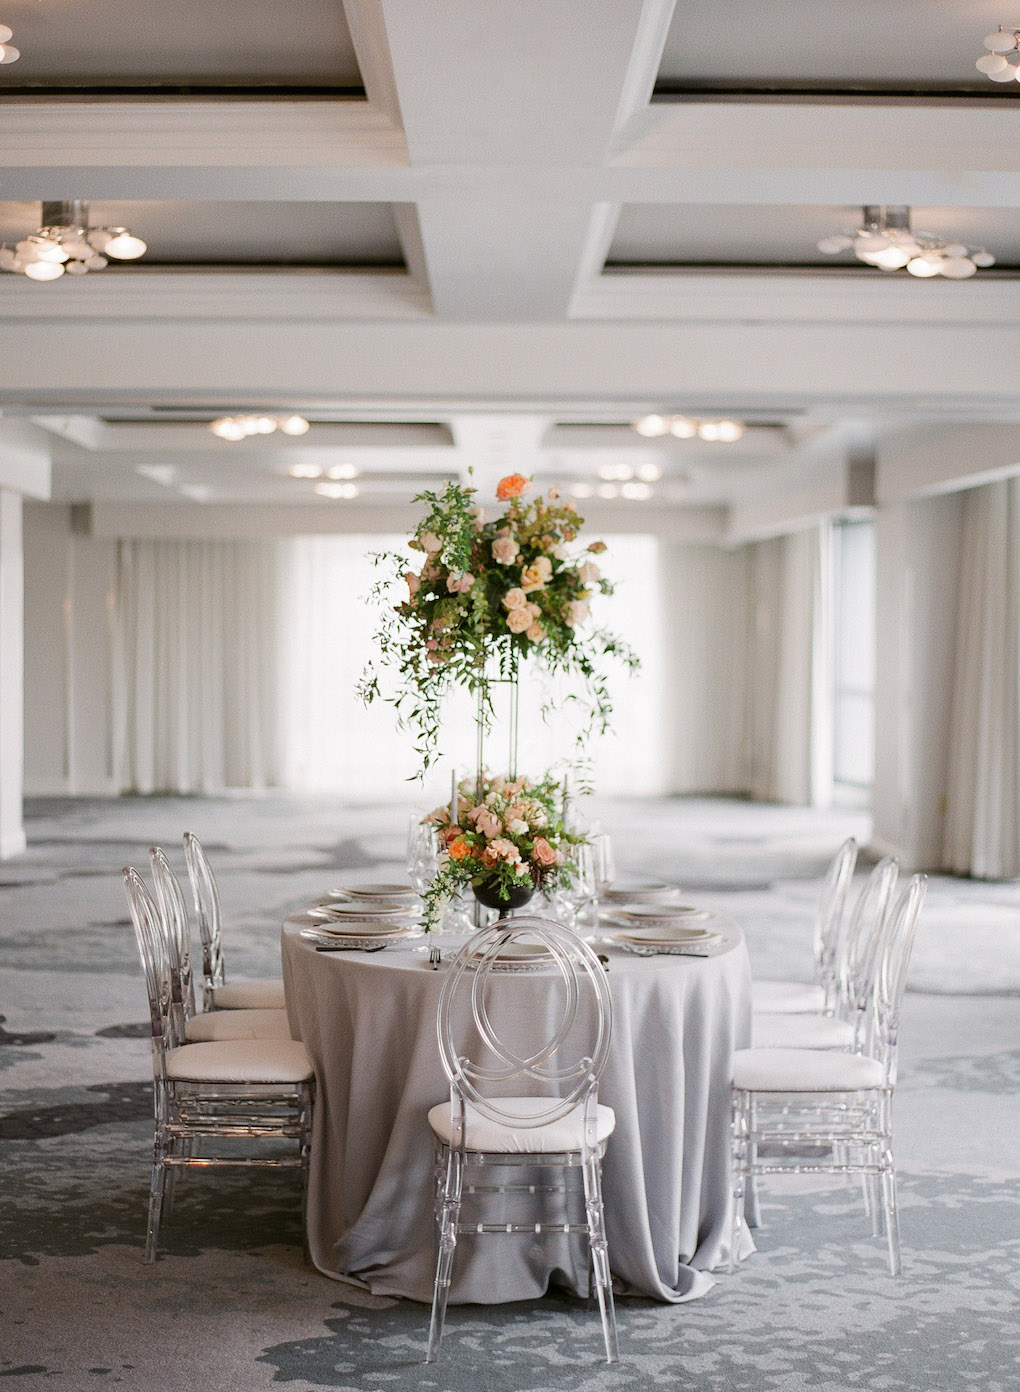 Soft grey wedding palette: Soft and Subtle Palettes of Spring Blossoms | Editorial Shoot at The Renaissance Pittsburgh by Exhale Events. See more inspiration at exhale-events.com!